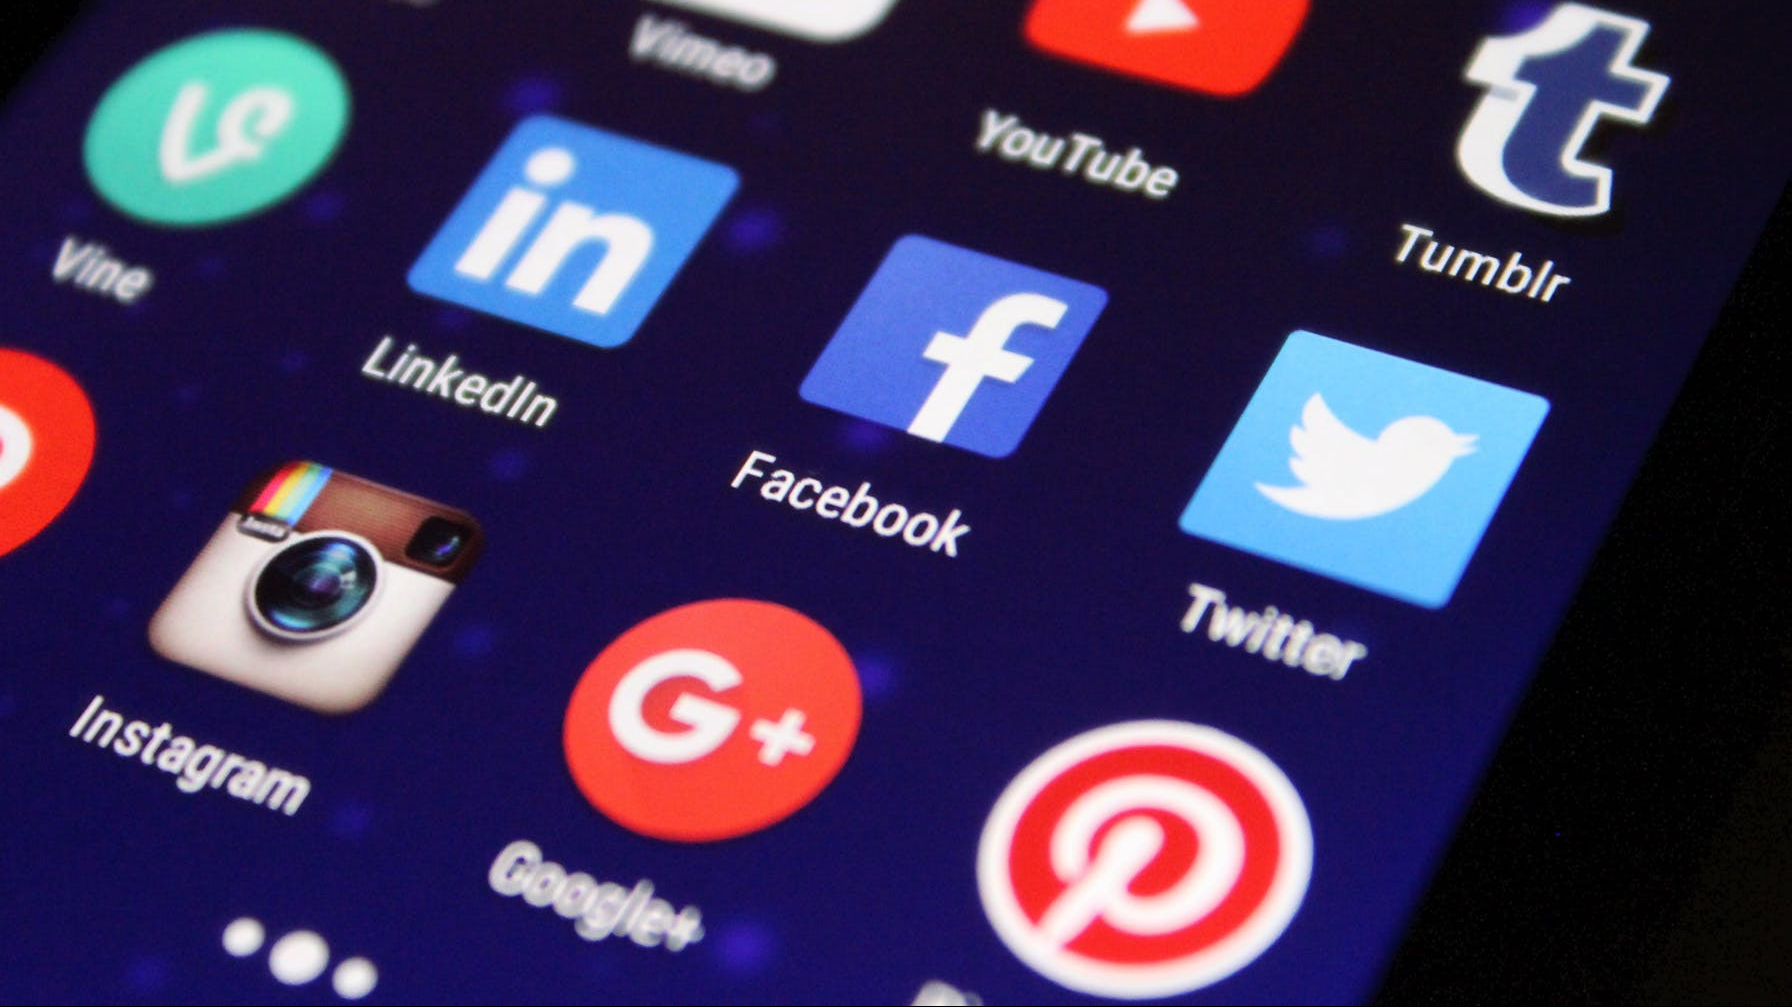 The purpose of Social Media is to isolate you from human society